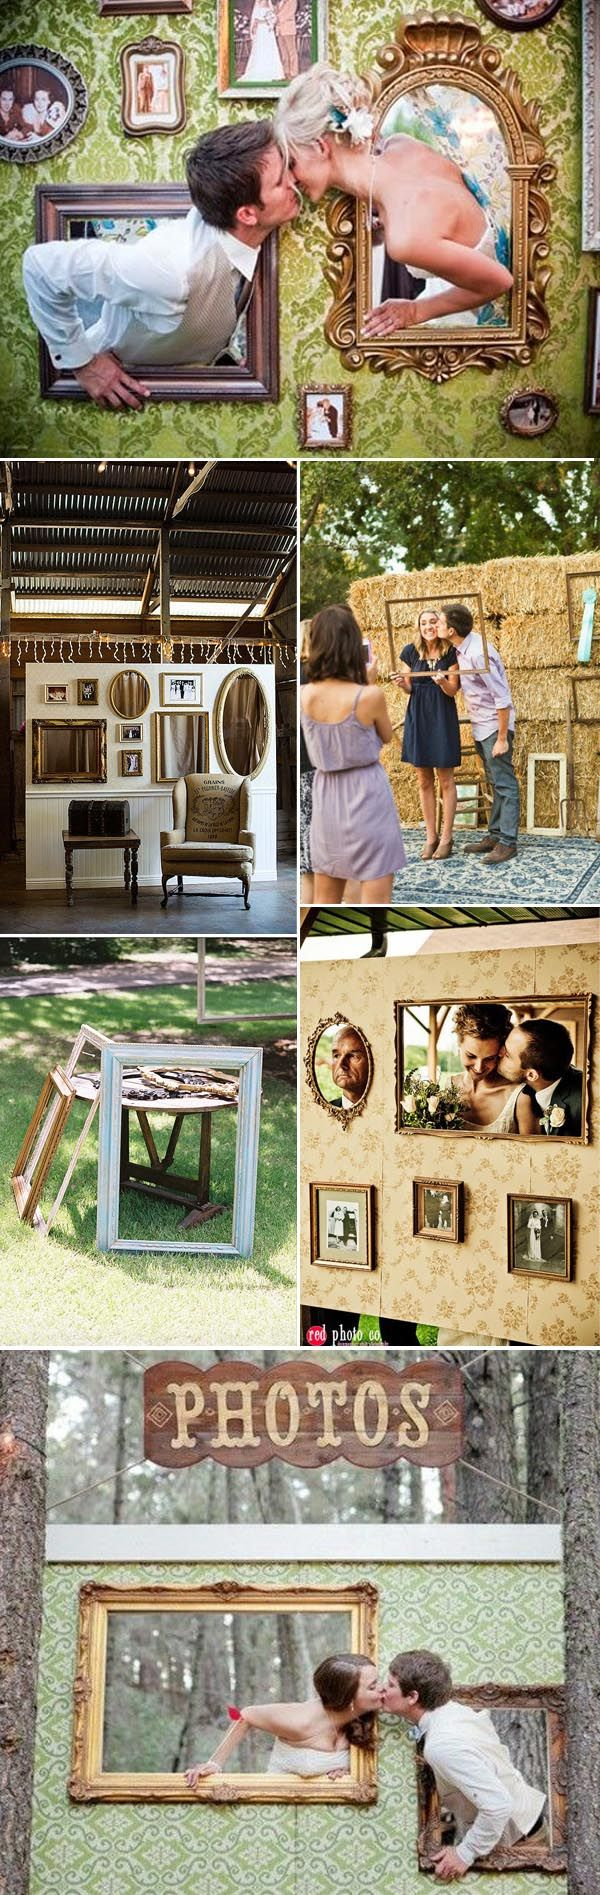 creative fun wedding photo booth ideas made of photo frames